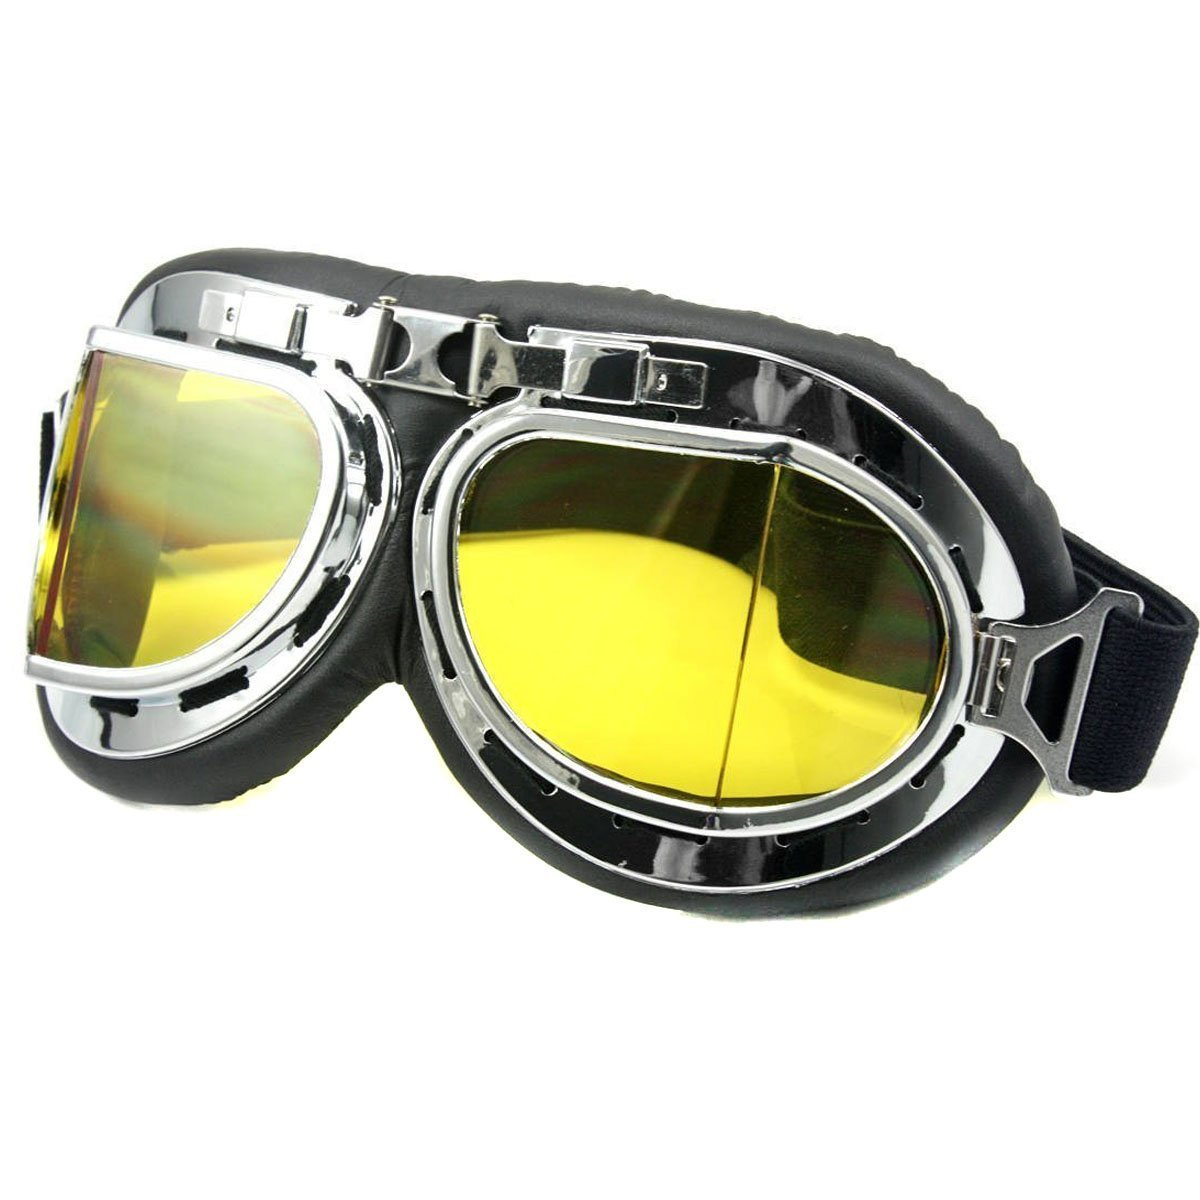 Fletion Raf Pilot,Scooter Biker,Motocross,Cruisers,Chopper Motorcycle Fly Safety Goggles,Sports Protective Safety Glasses Sun UV Wind Eye Protect Helmet Goggles